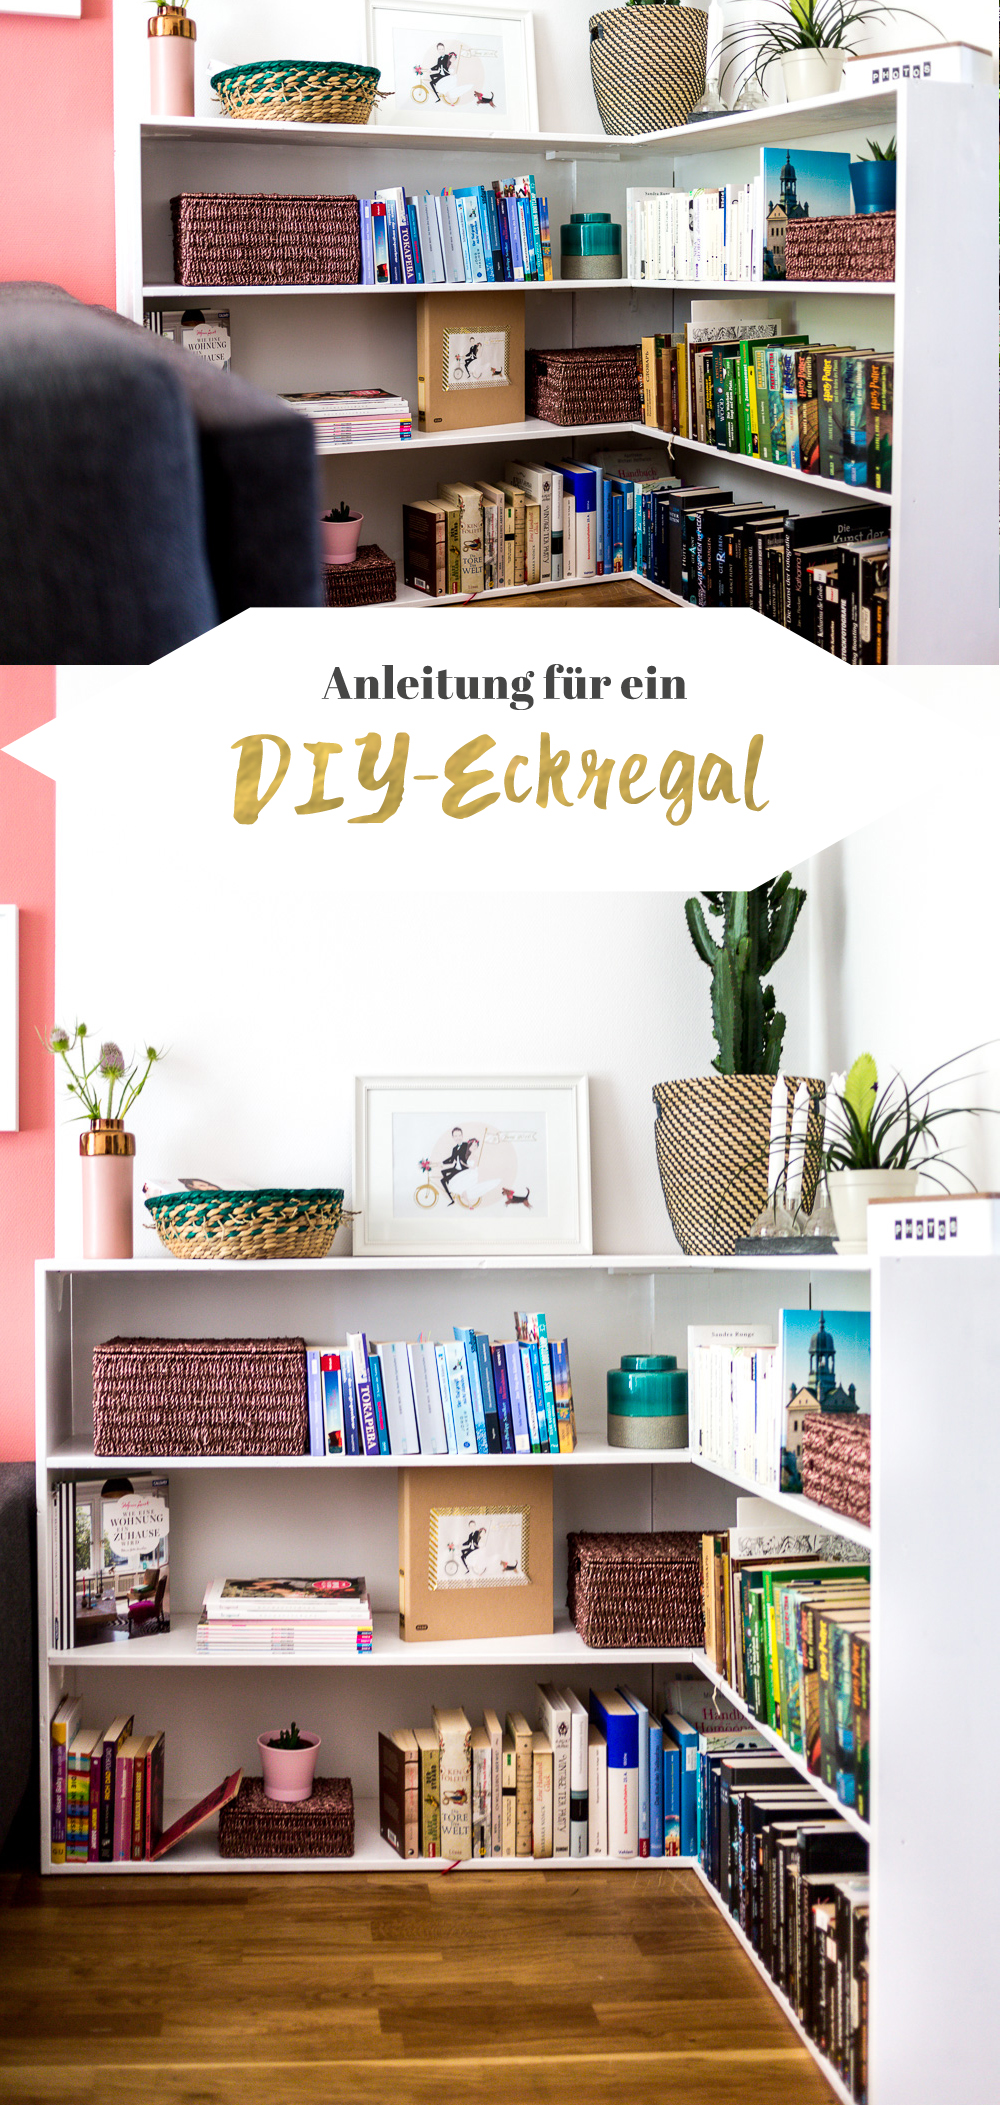 diy hier meine pers nliche bauanleitung f r ein eckregal. Black Bedroom Furniture Sets. Home Design Ideas